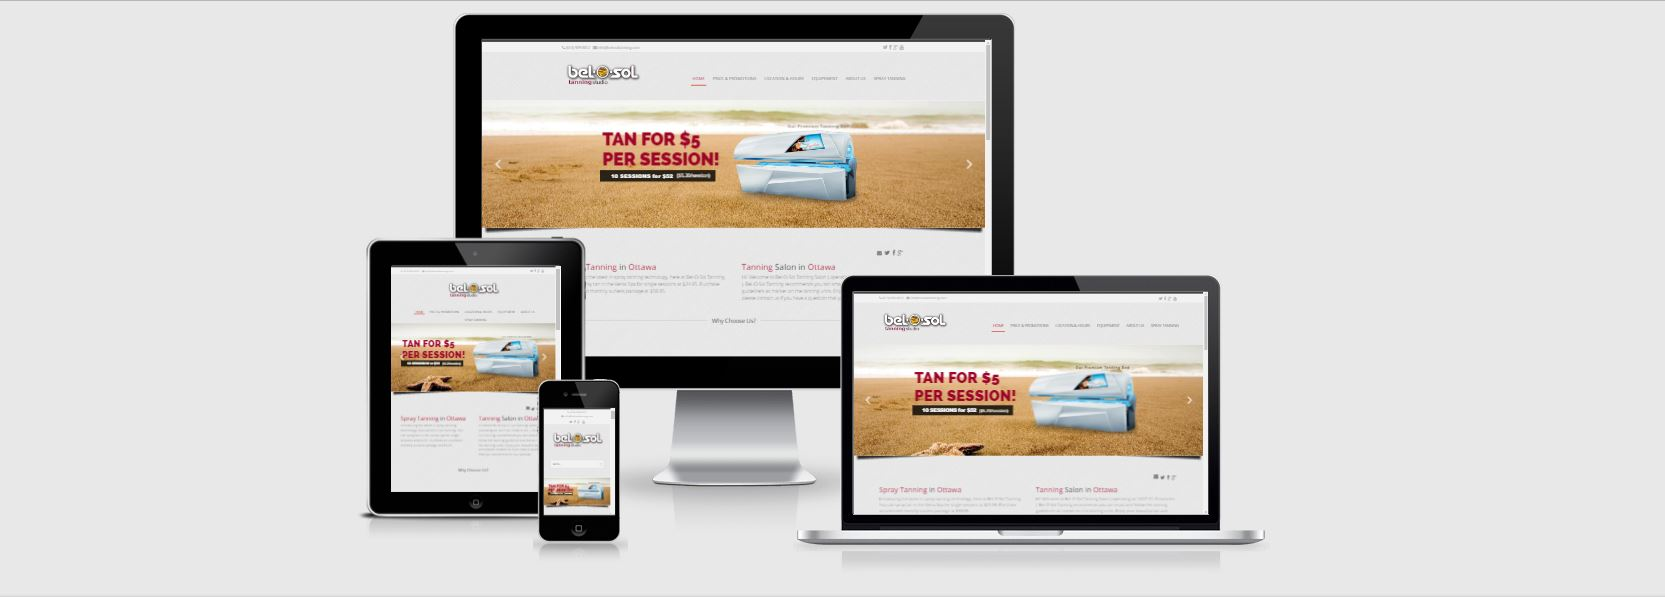 website-design-belosoltanning-com